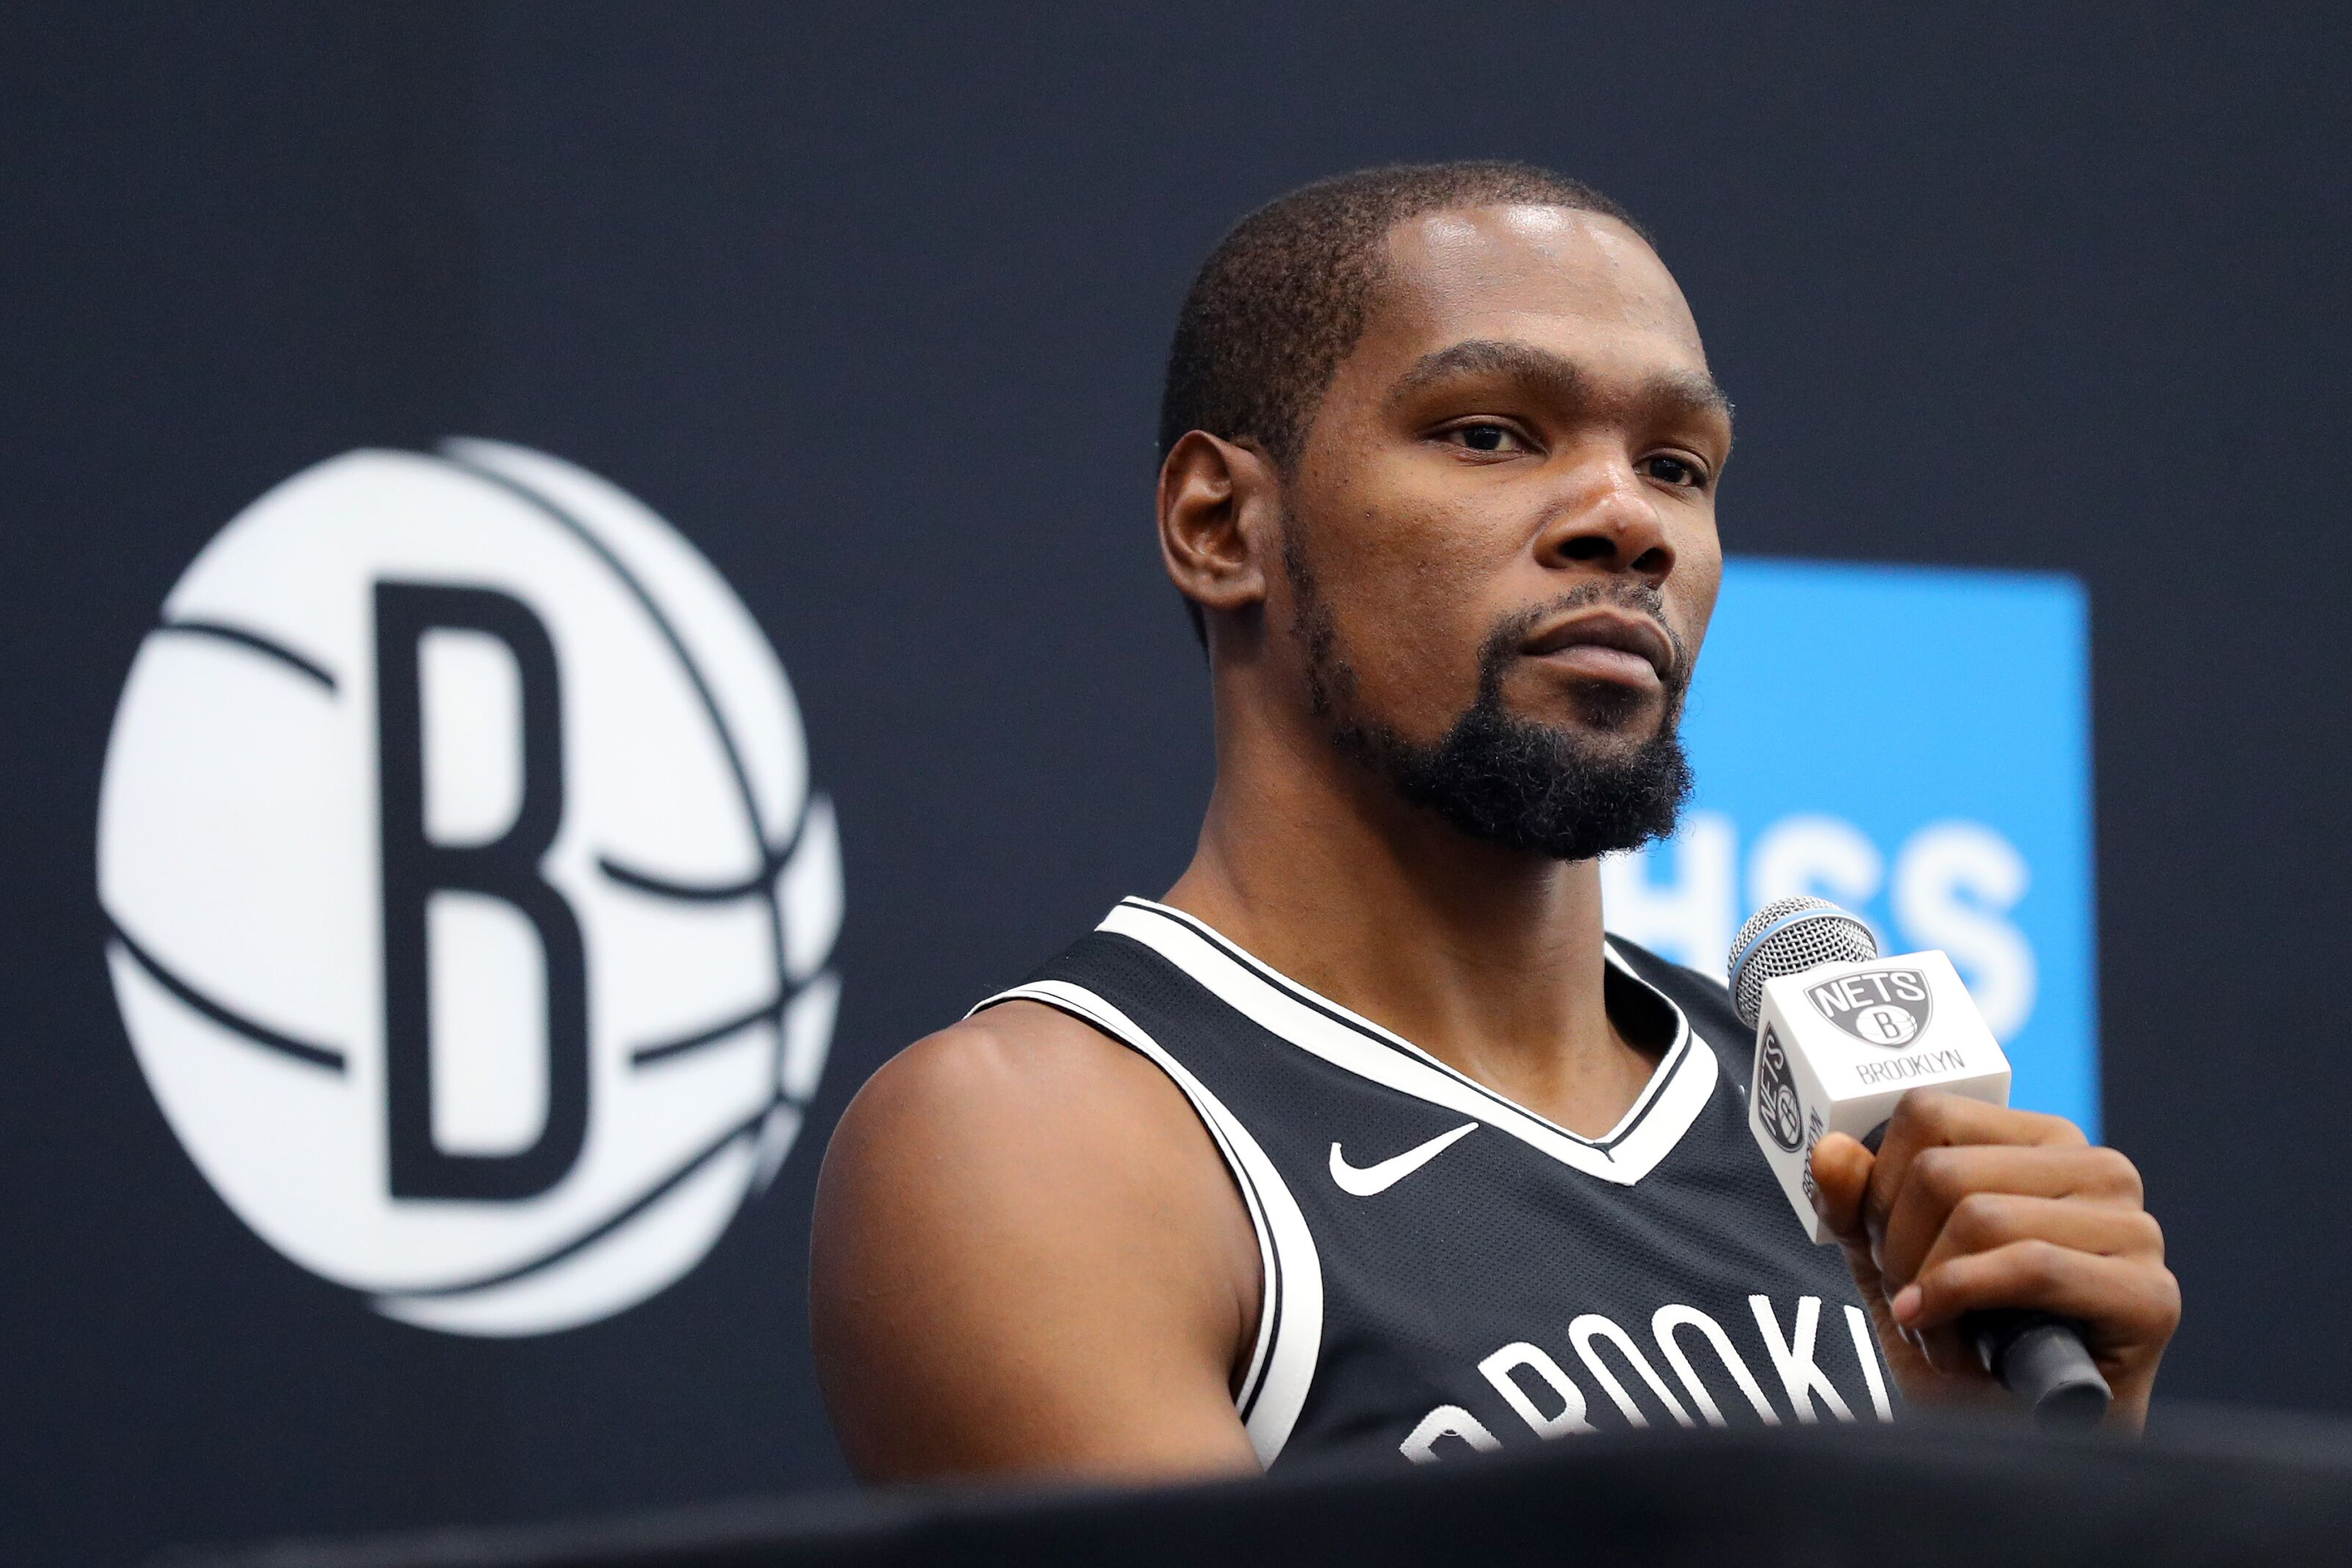 Brooklyn Nets: Kevin Durant should be very active on social media during rehab